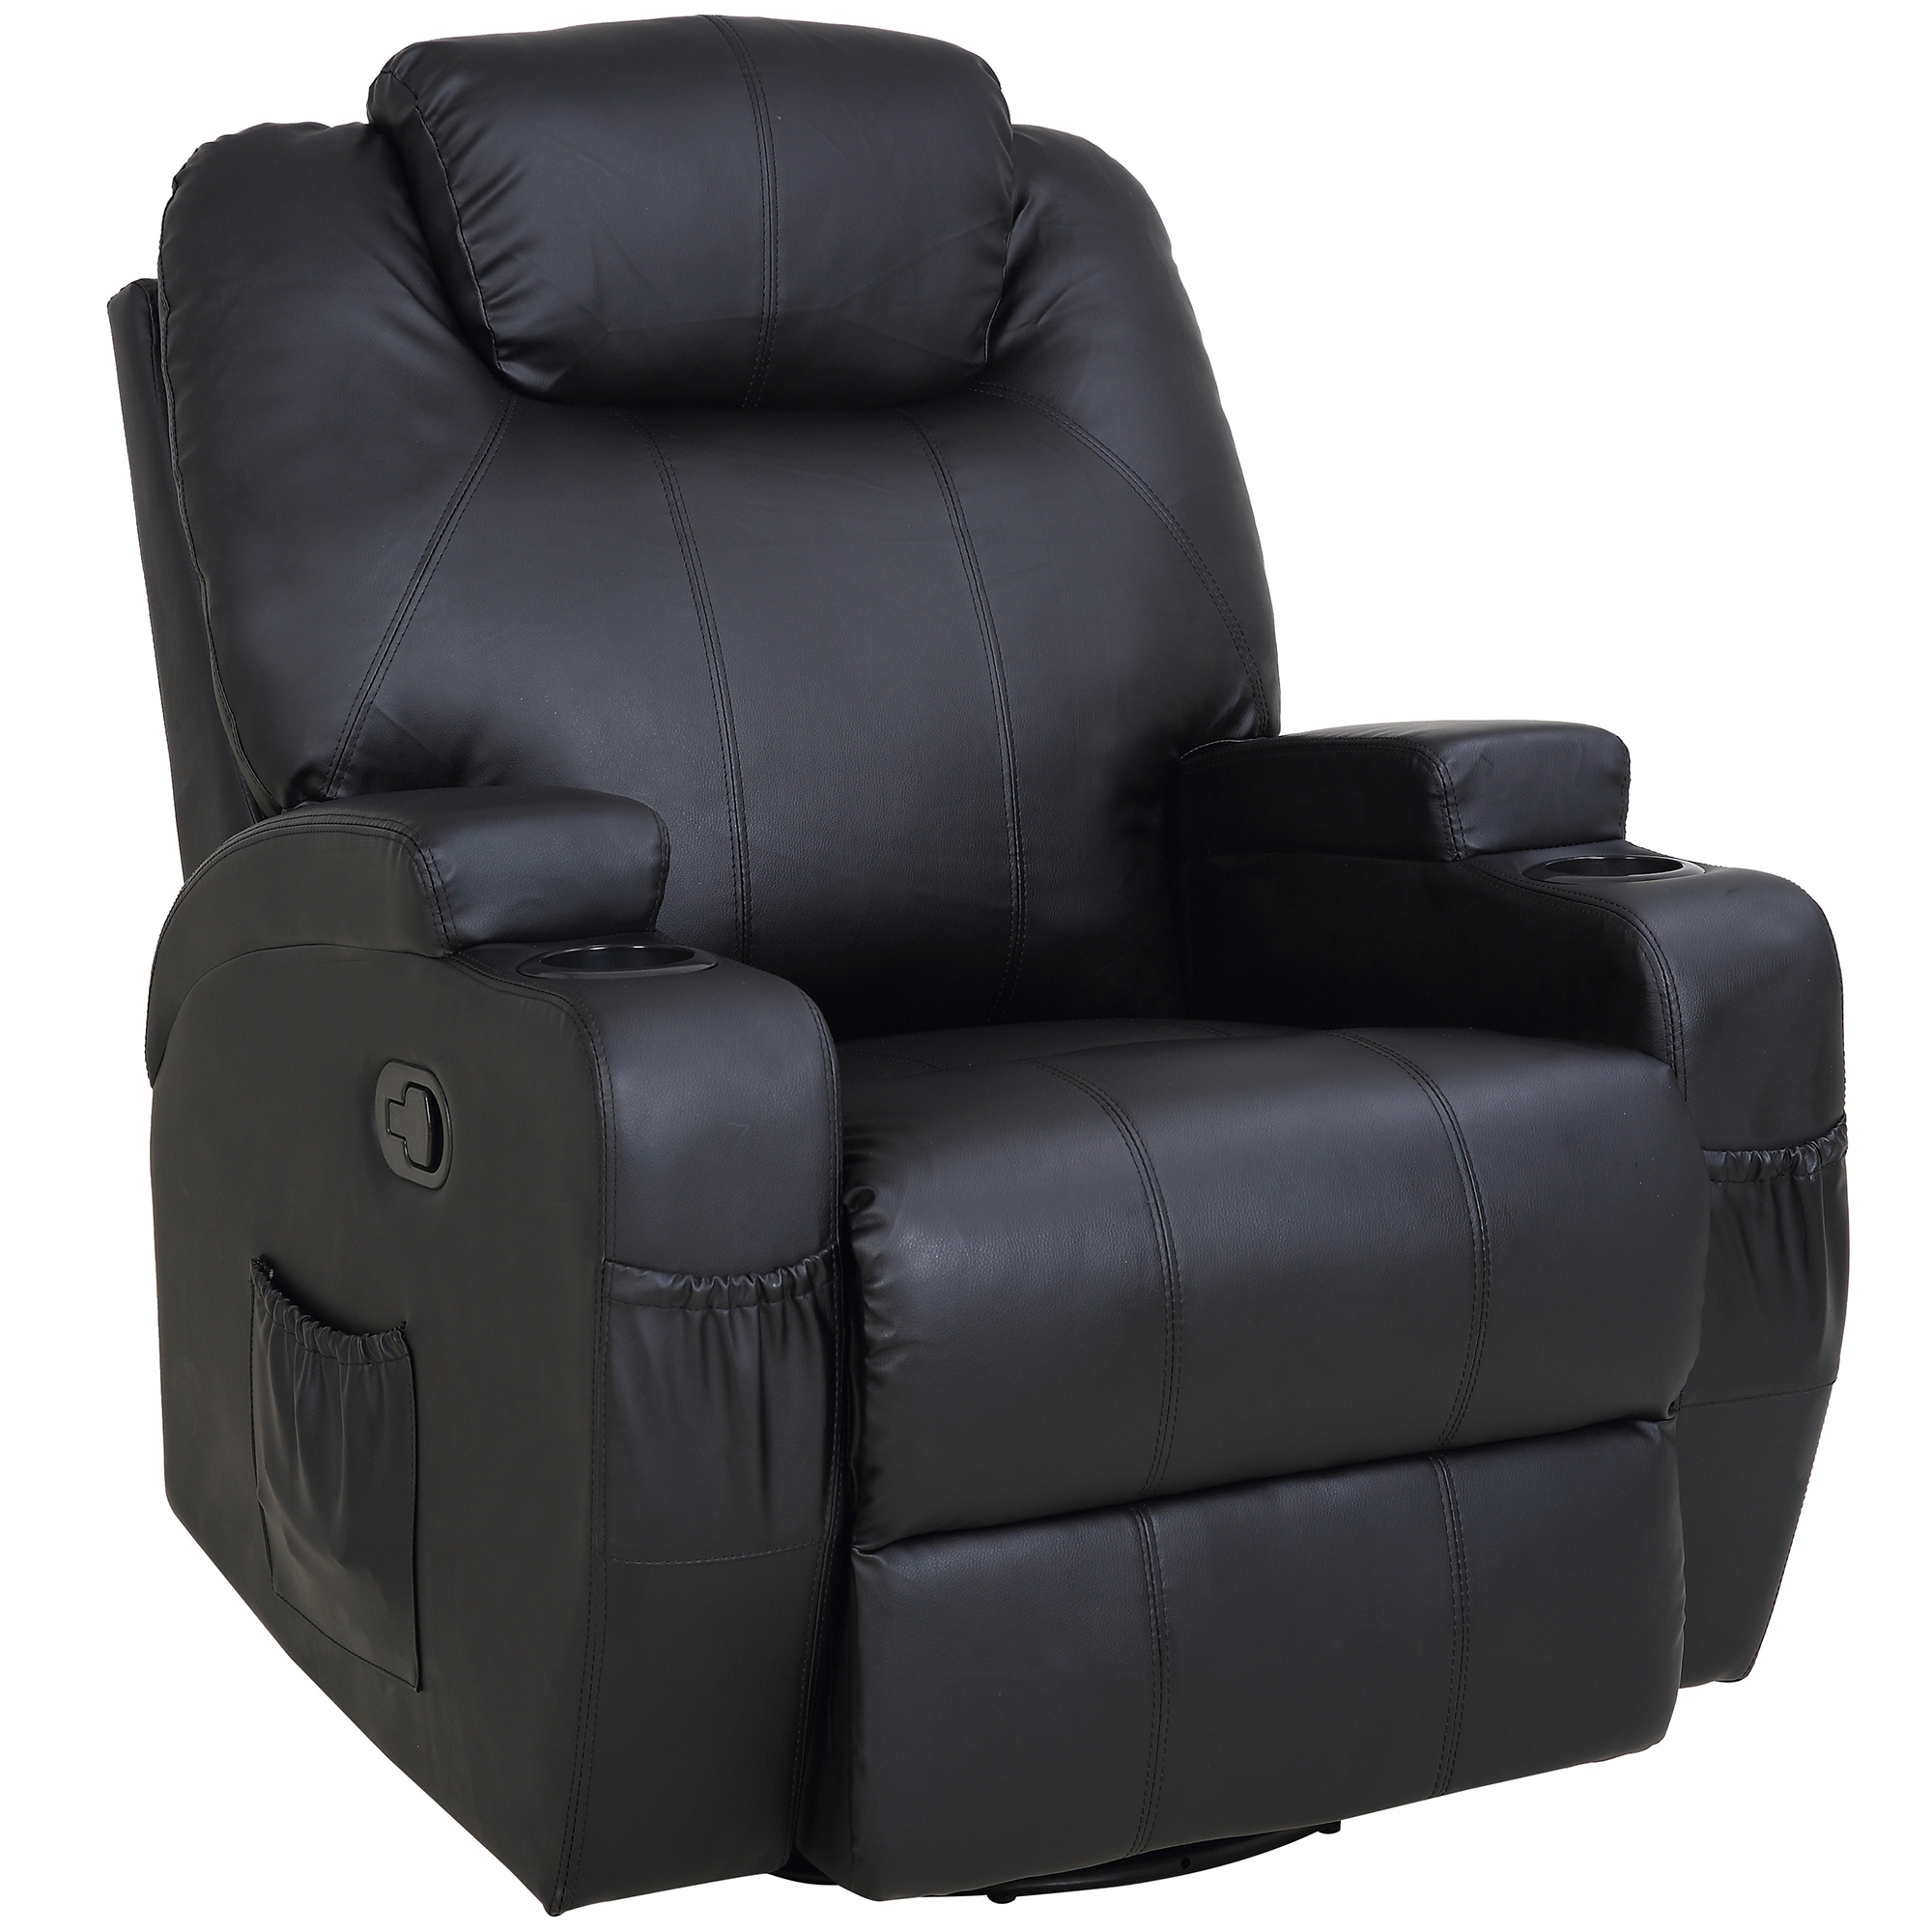 Malandi Heated Faux Leather Recliner Chair